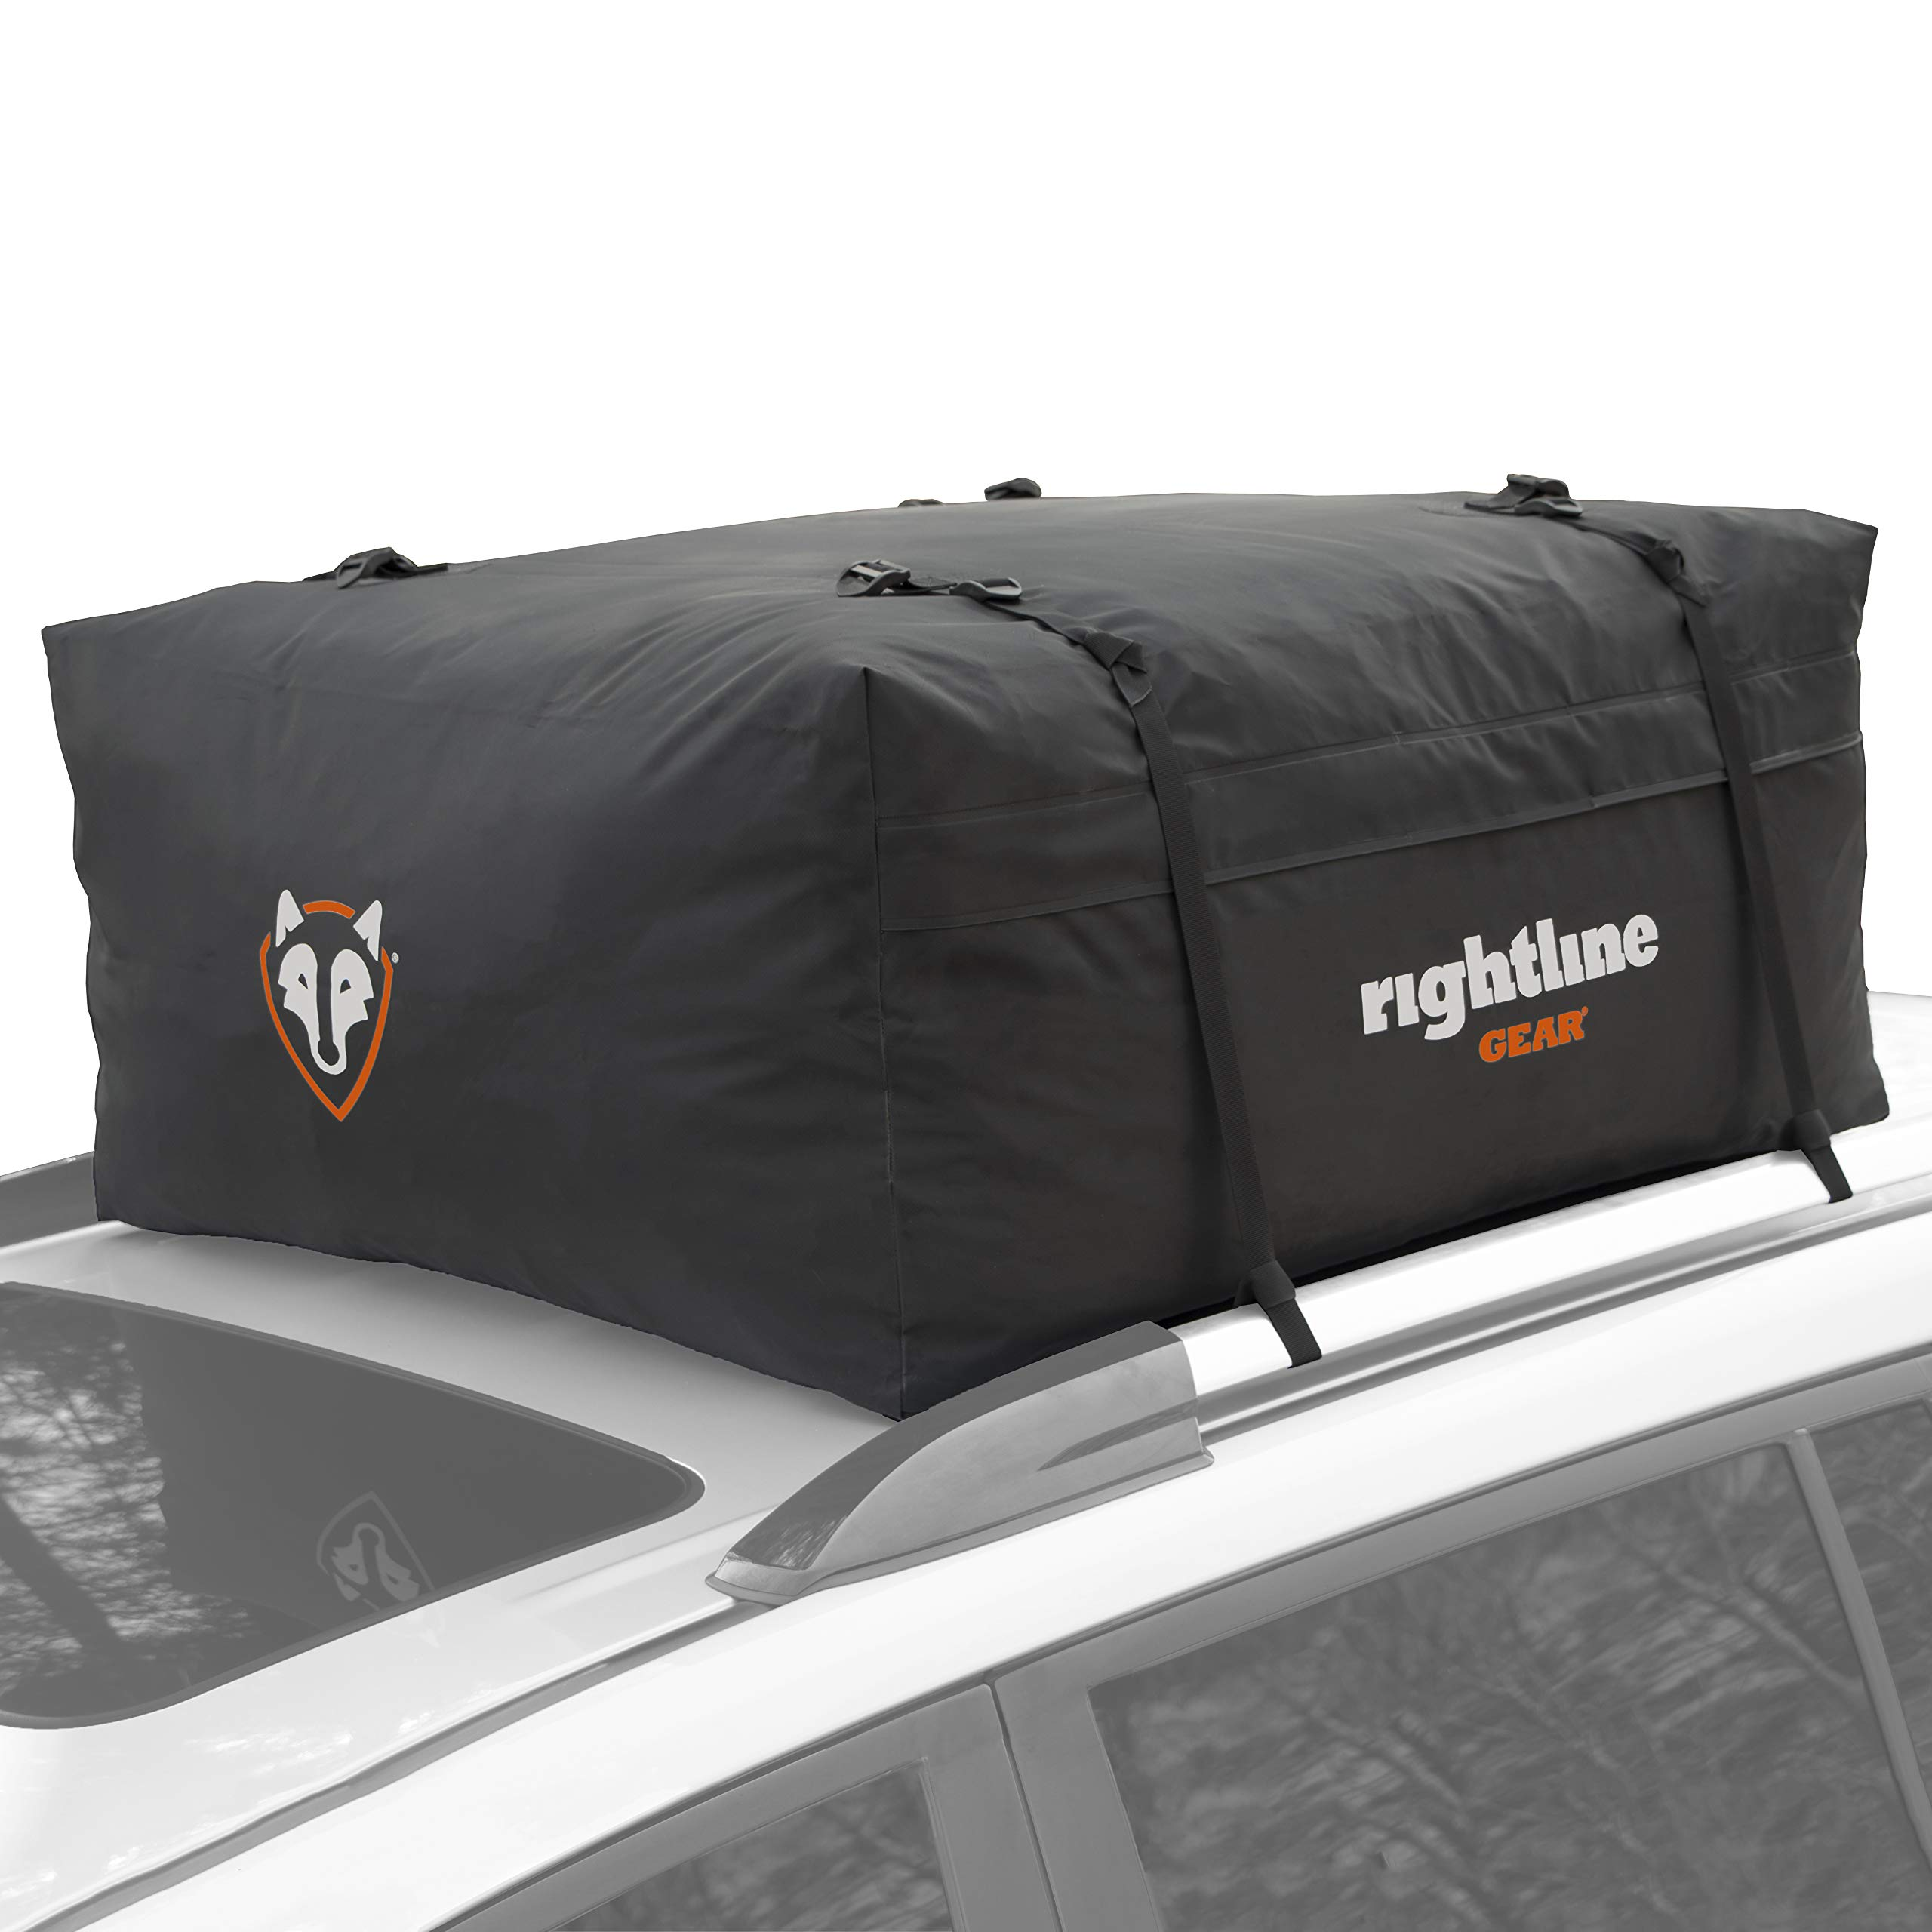 Rightline Gear Range 2 Car Top Carrier, 15 cu ft, Weatherproof +, Attaches With or Without Roof Rack by Rightline Gear